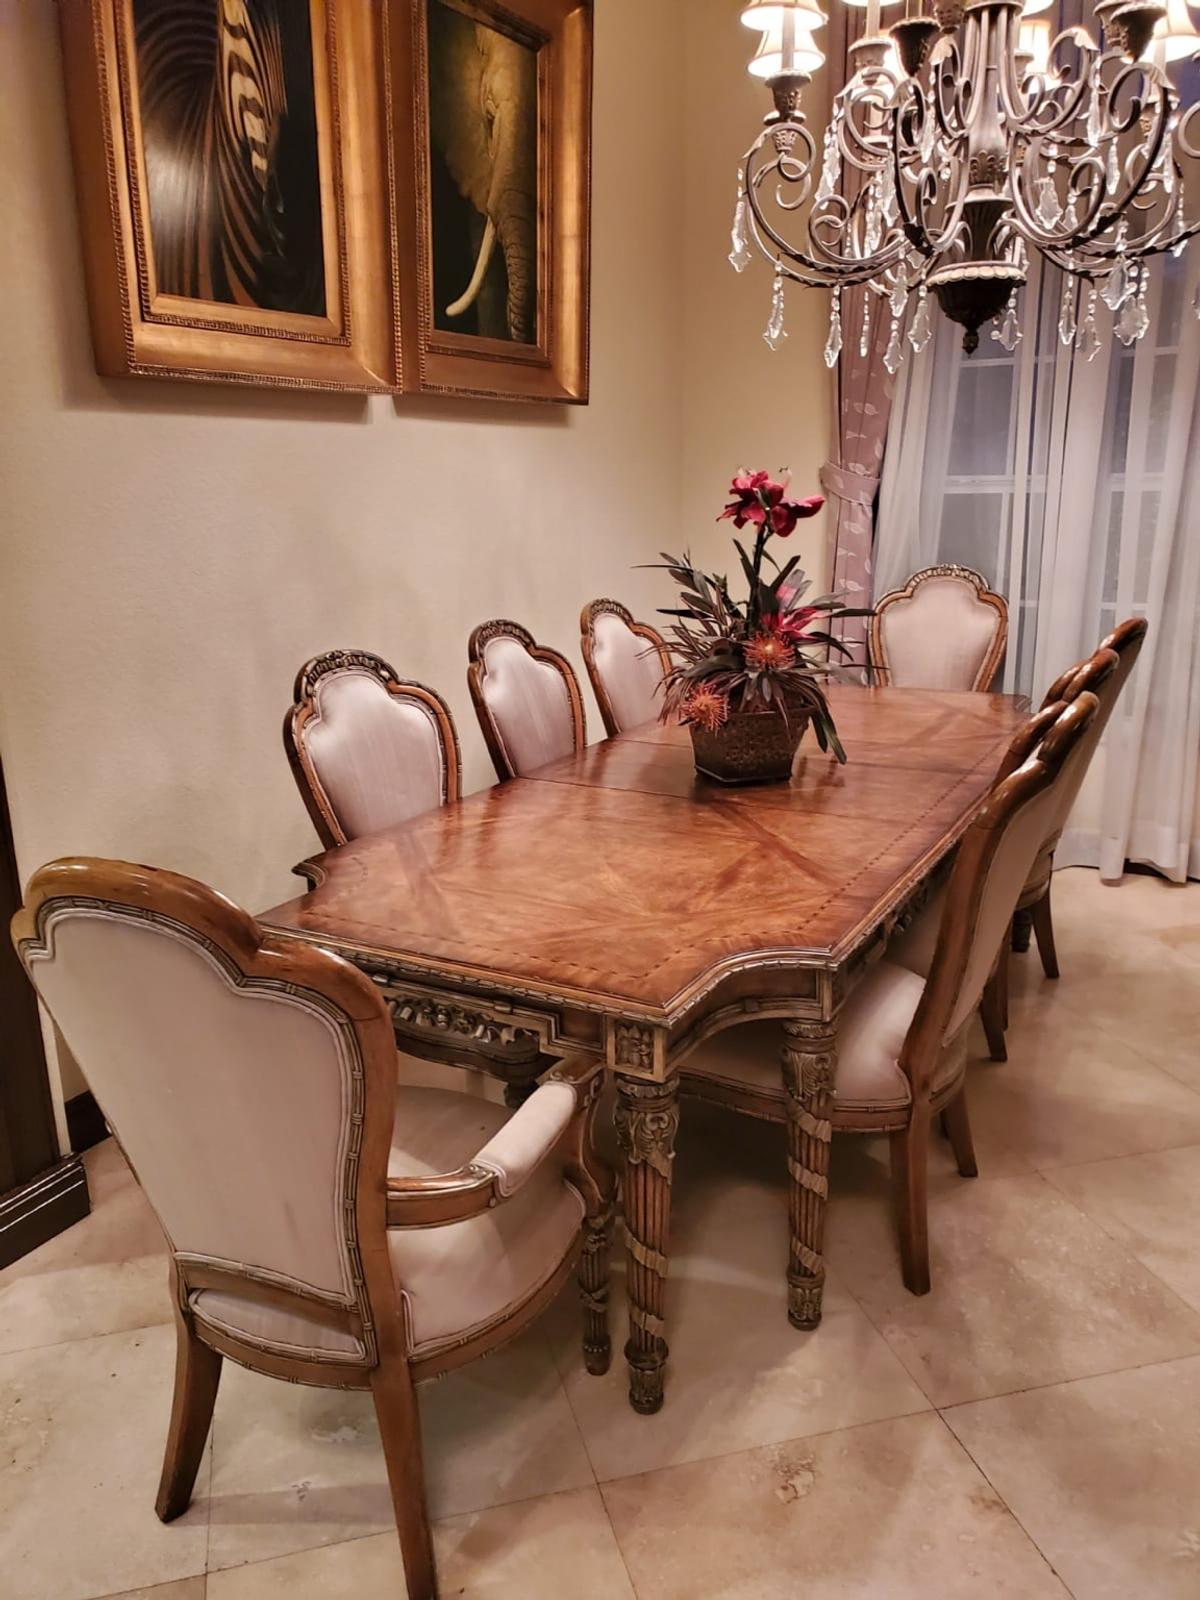 Dining Room Table With Chairs in 9 Boca Raton für 9.9,9 ...